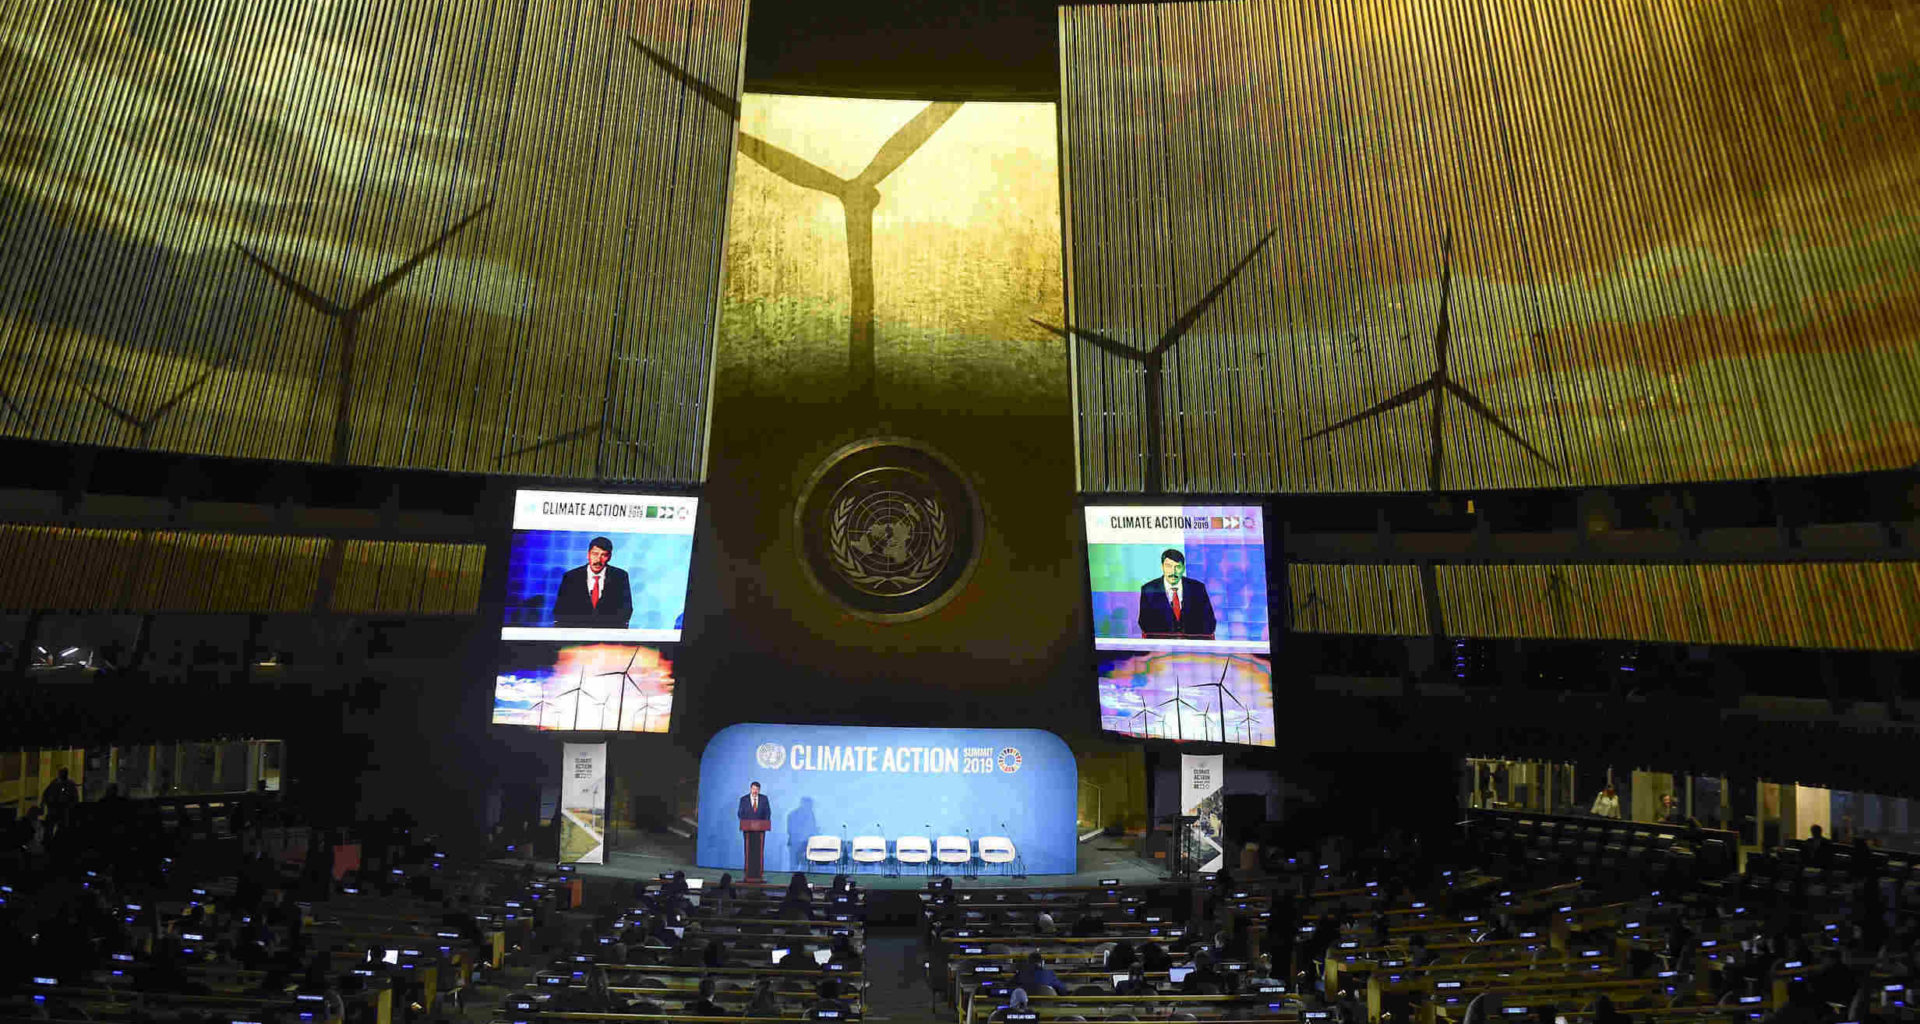 United Nations Climate Action Summit in New York